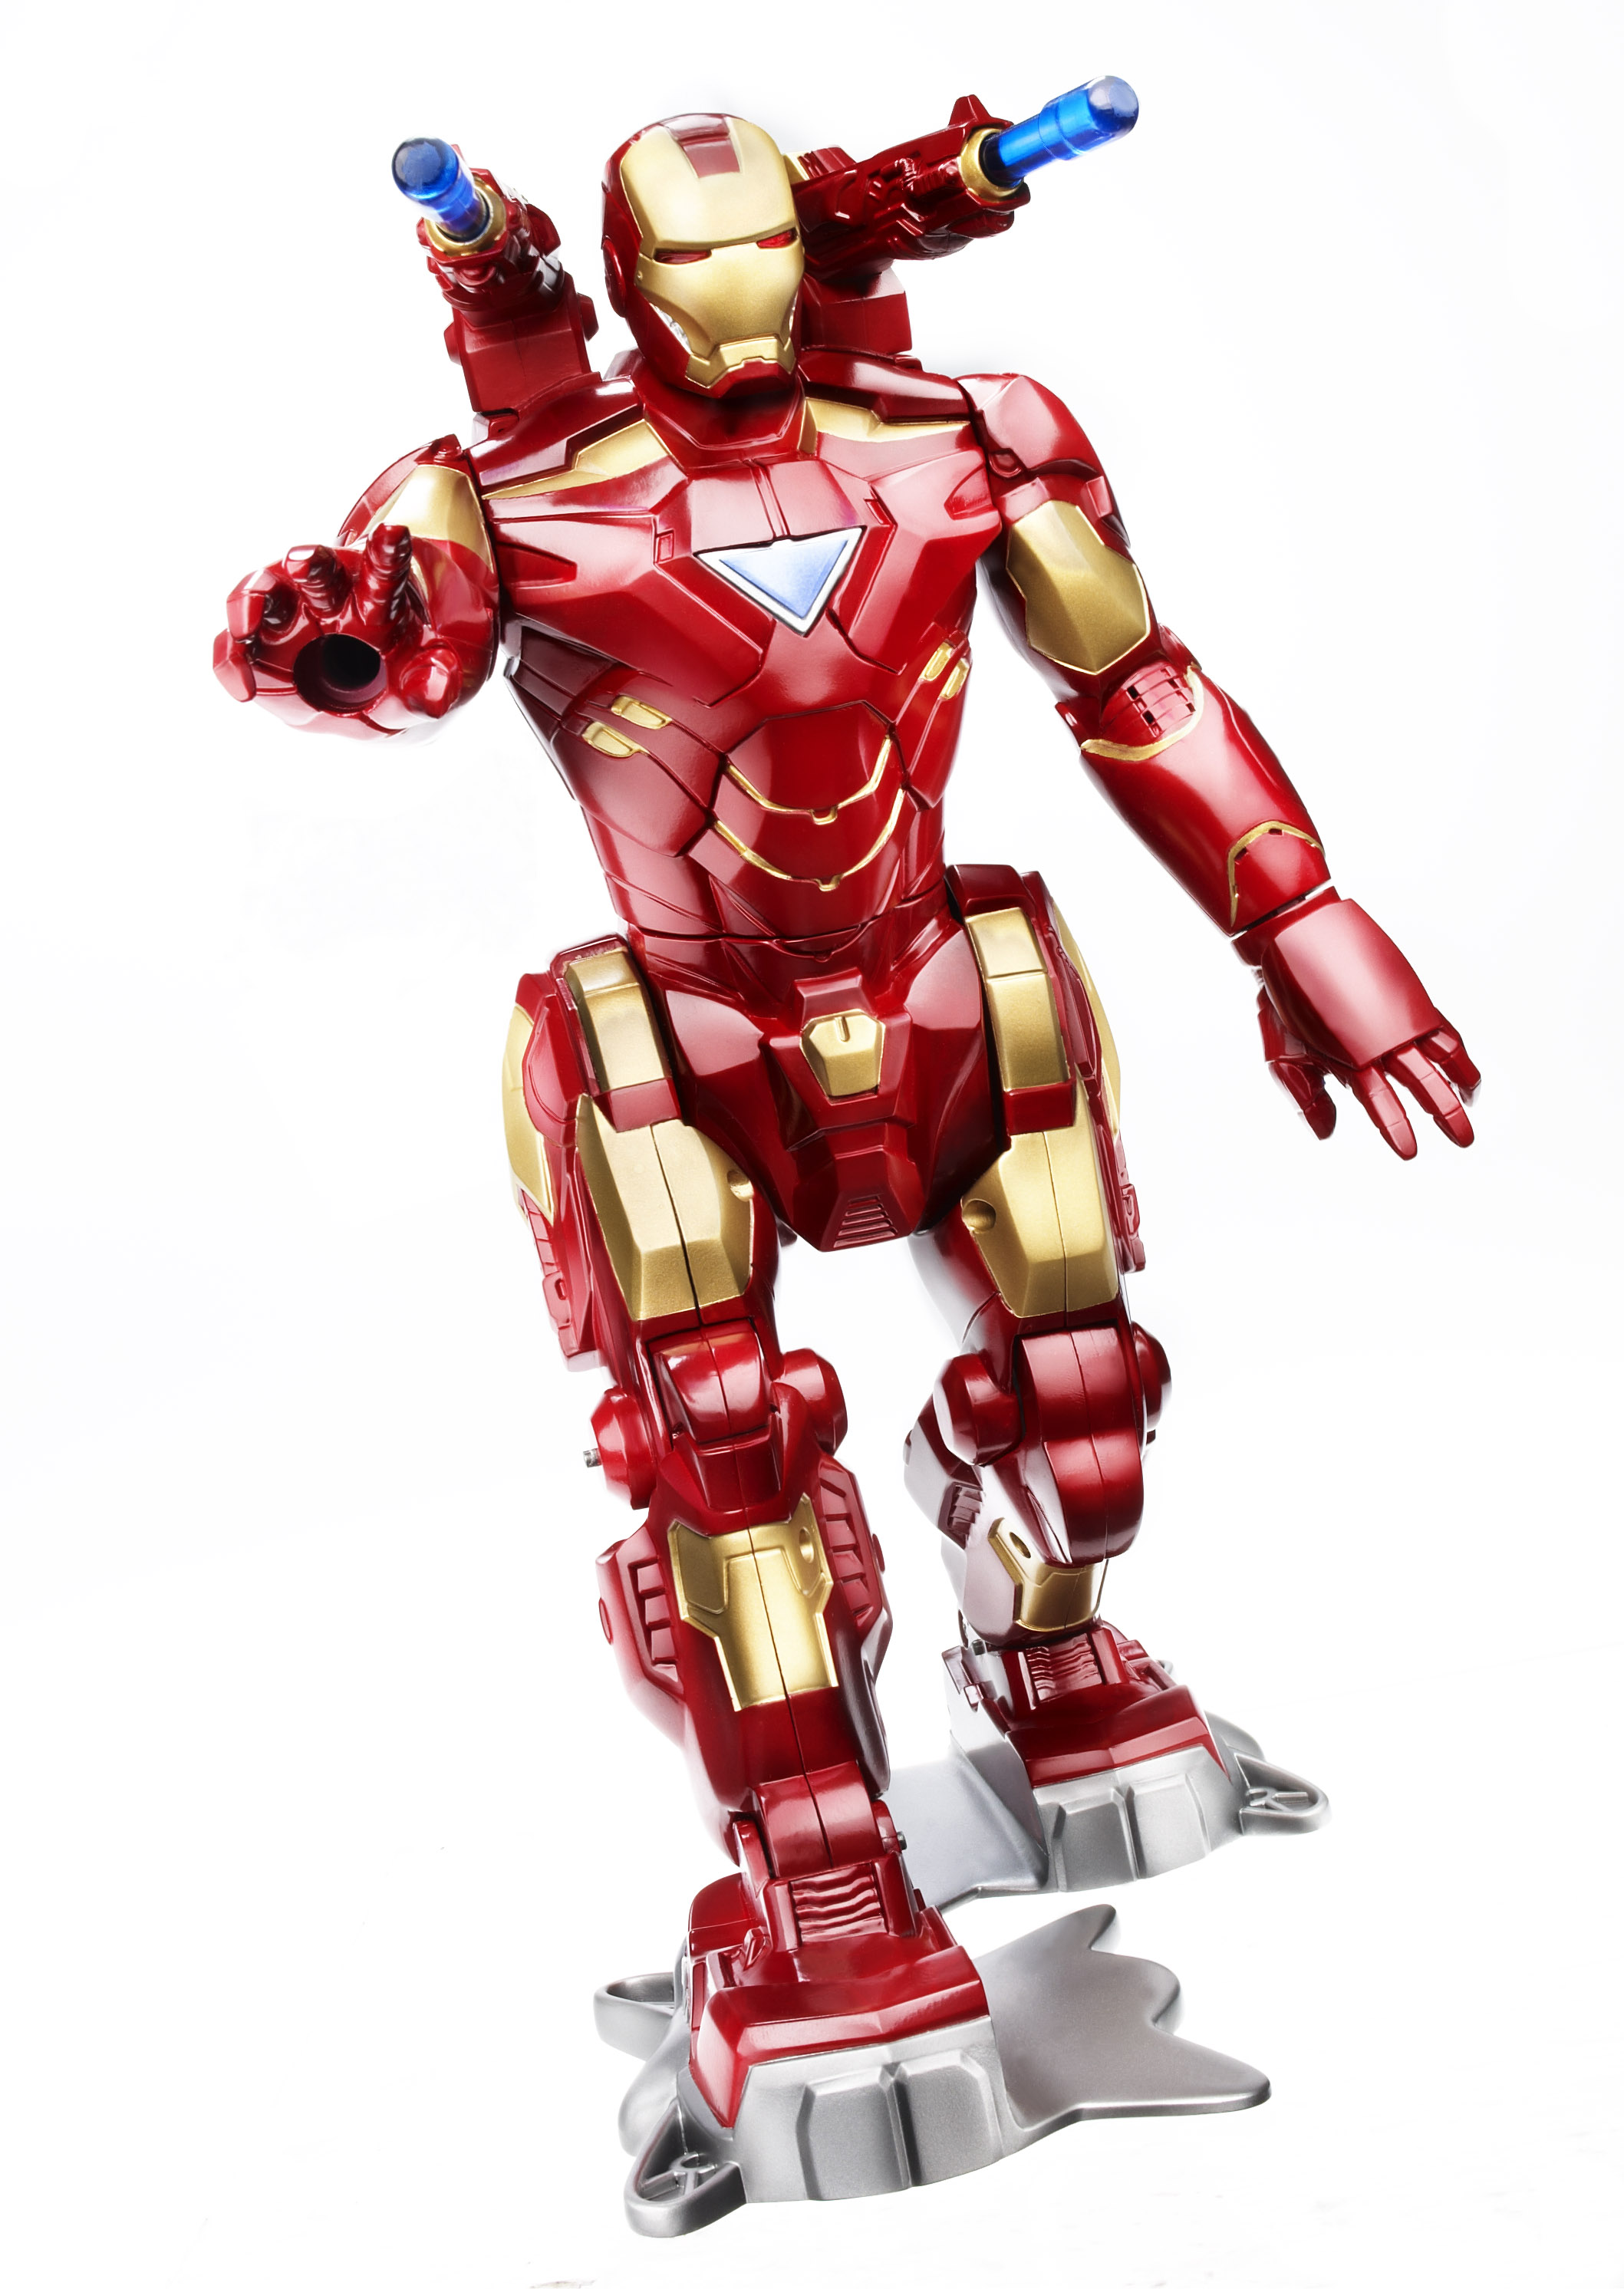 Iron Man 2 Takes Over Toy Fair The Toy Book